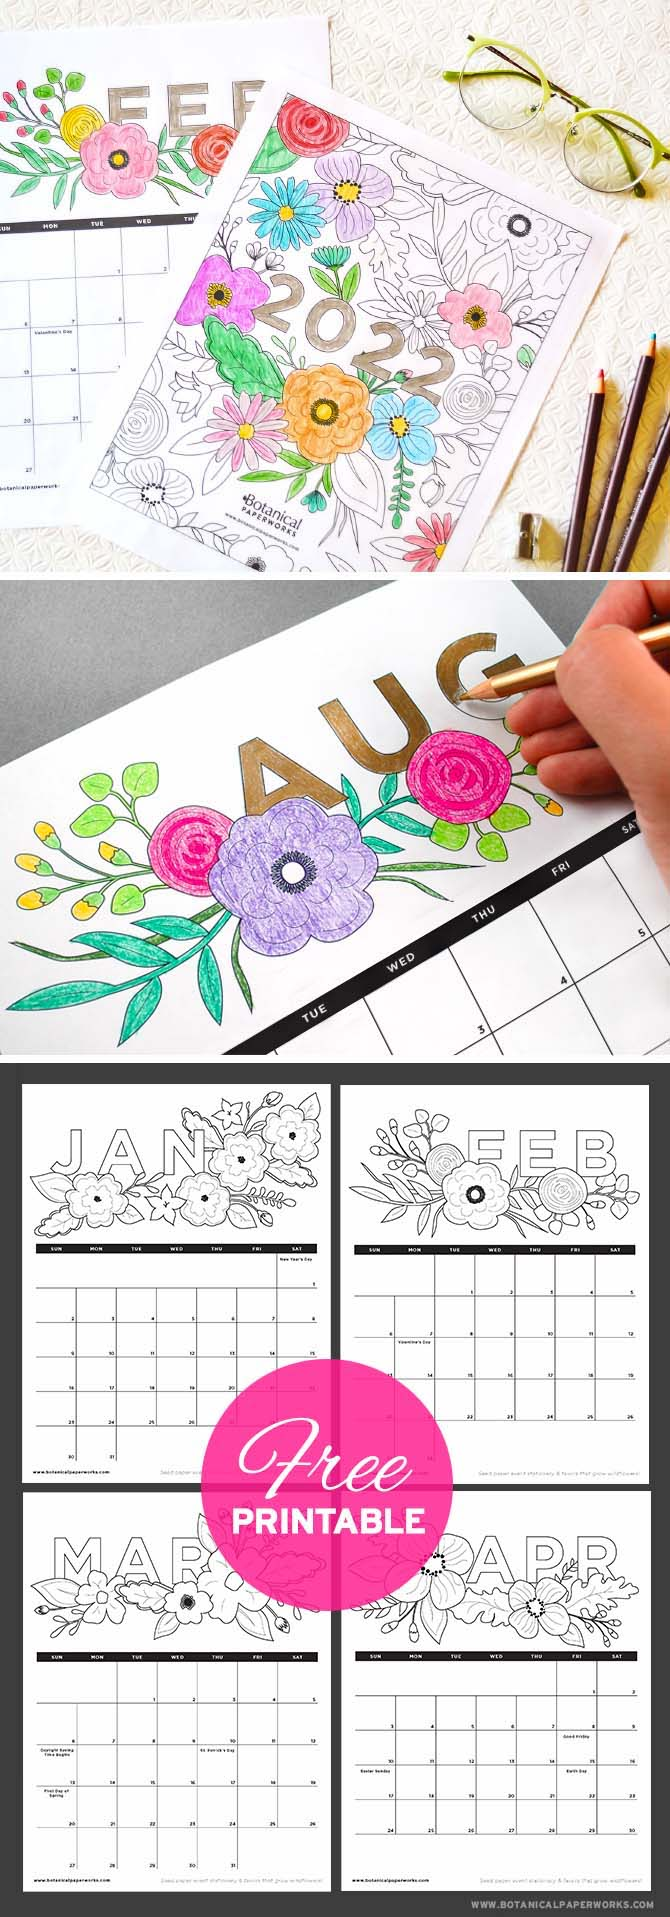 free printable 2022 calendars with coloring pages